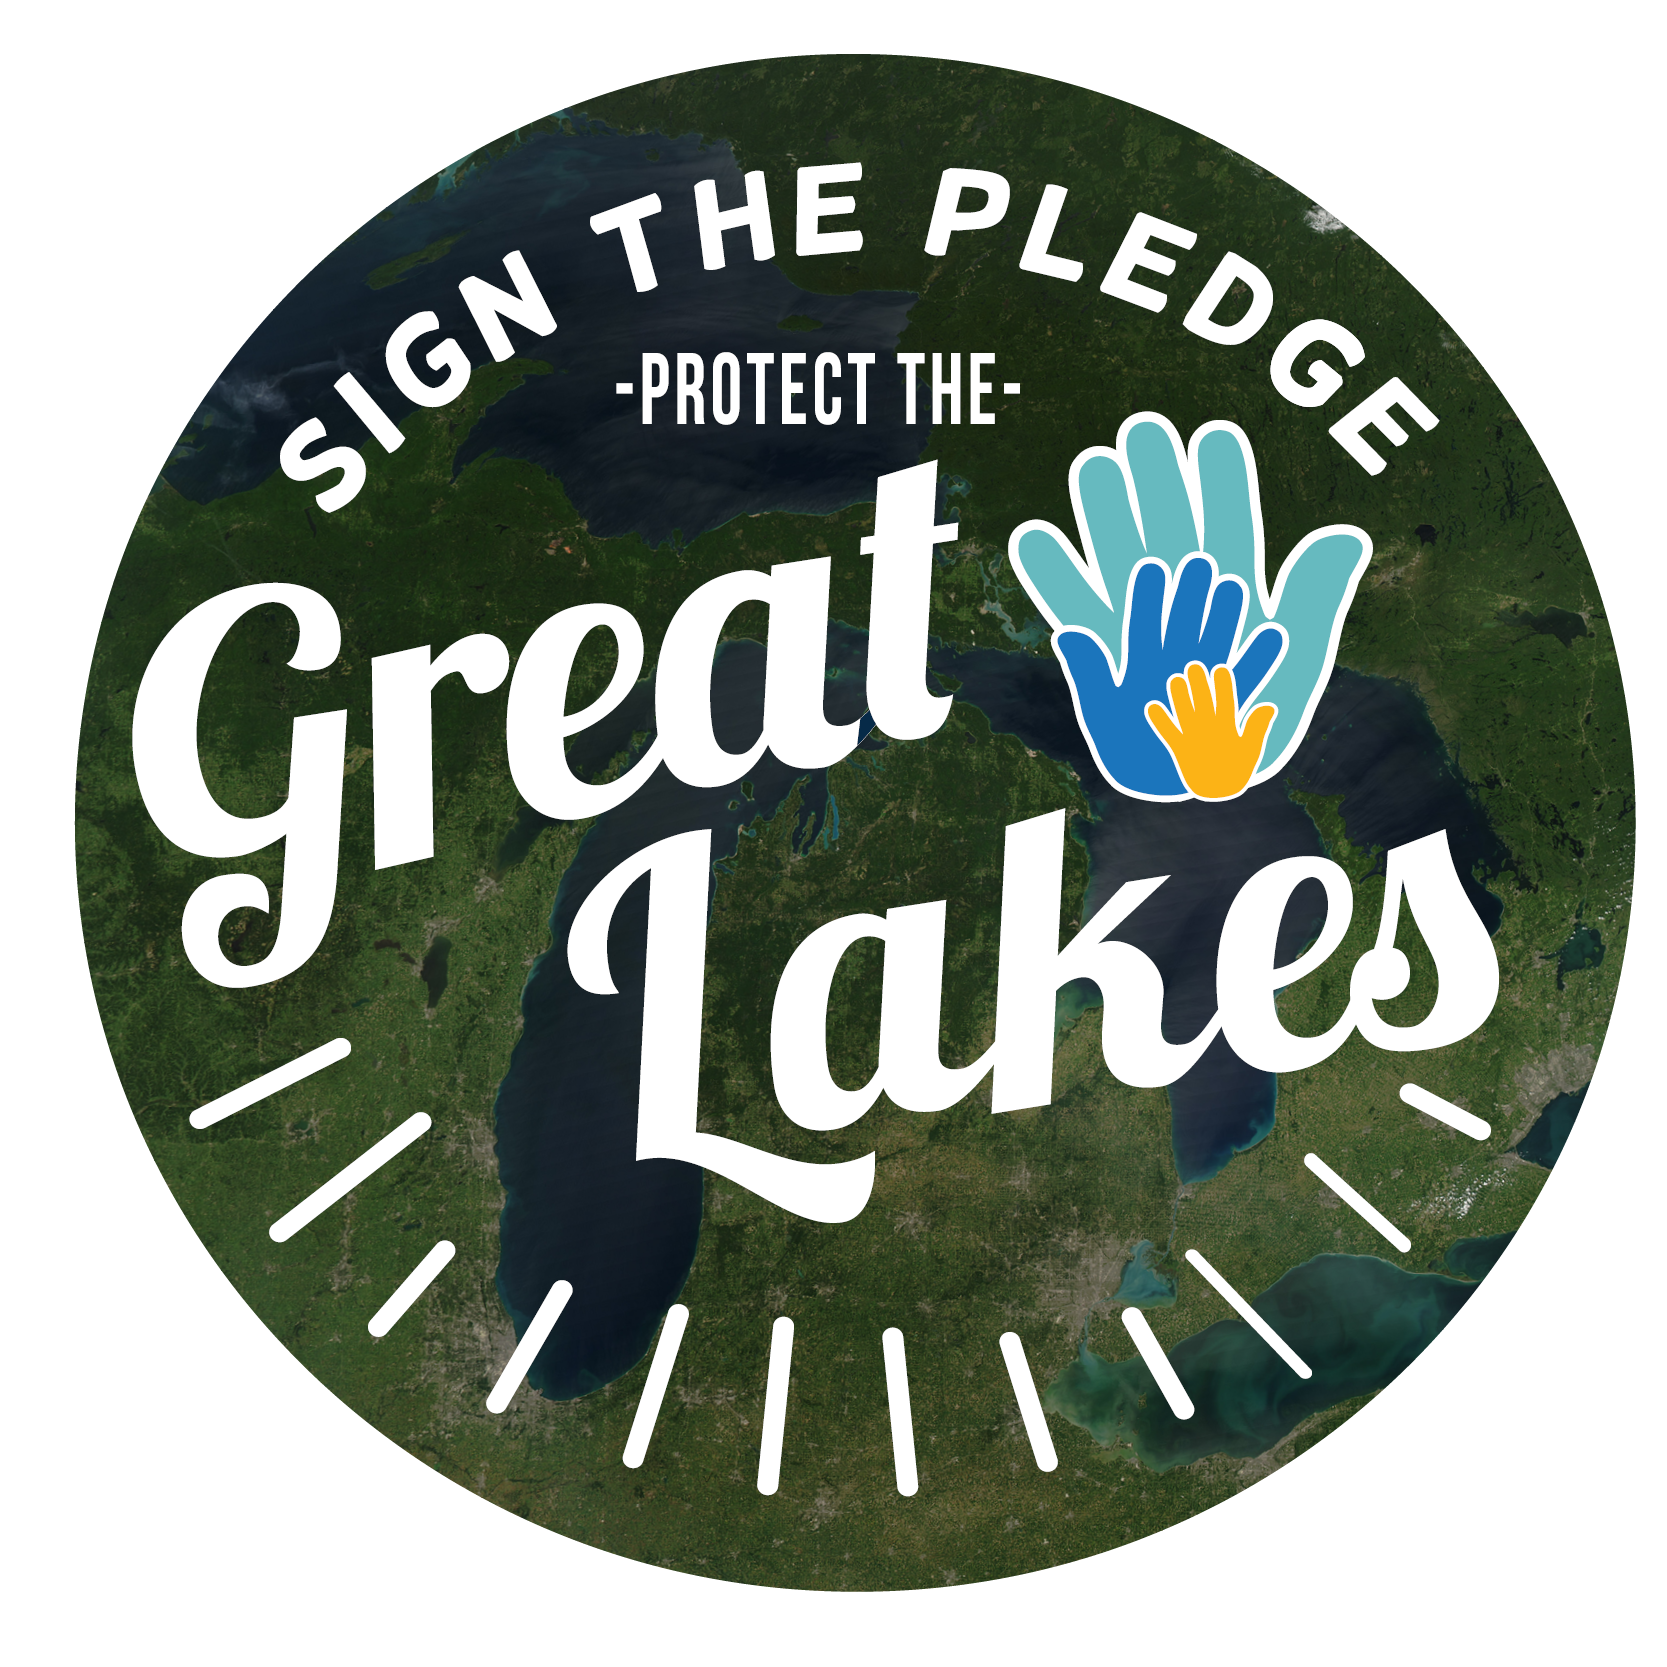 Protect the Great Lakes Pledge